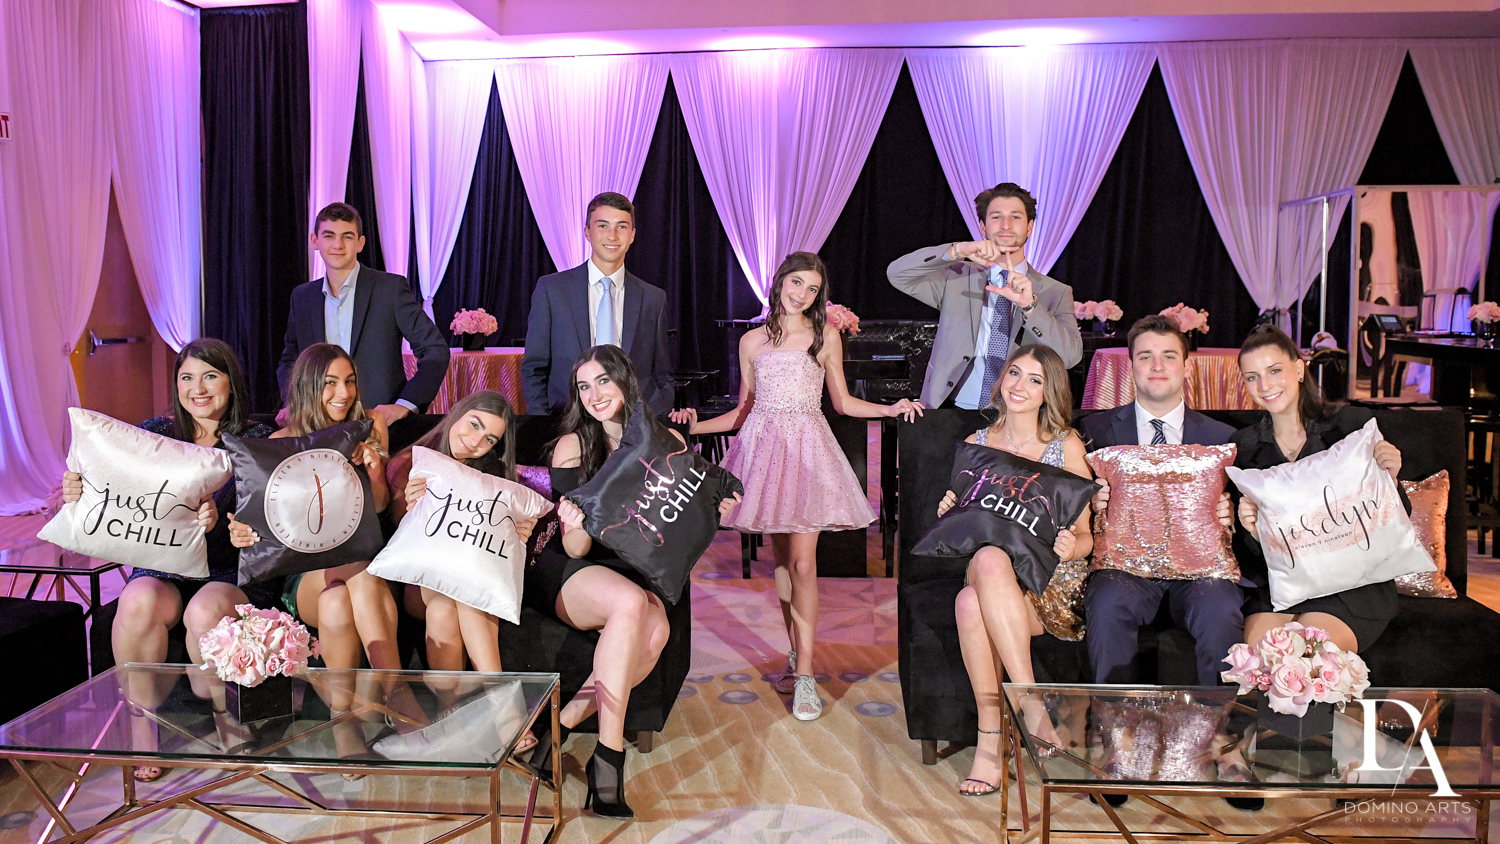 fun family pictures at Masquerade Ball Bat Mitzvah at Ritz Carlton Fort Lauderdale by Domino Arts Photography